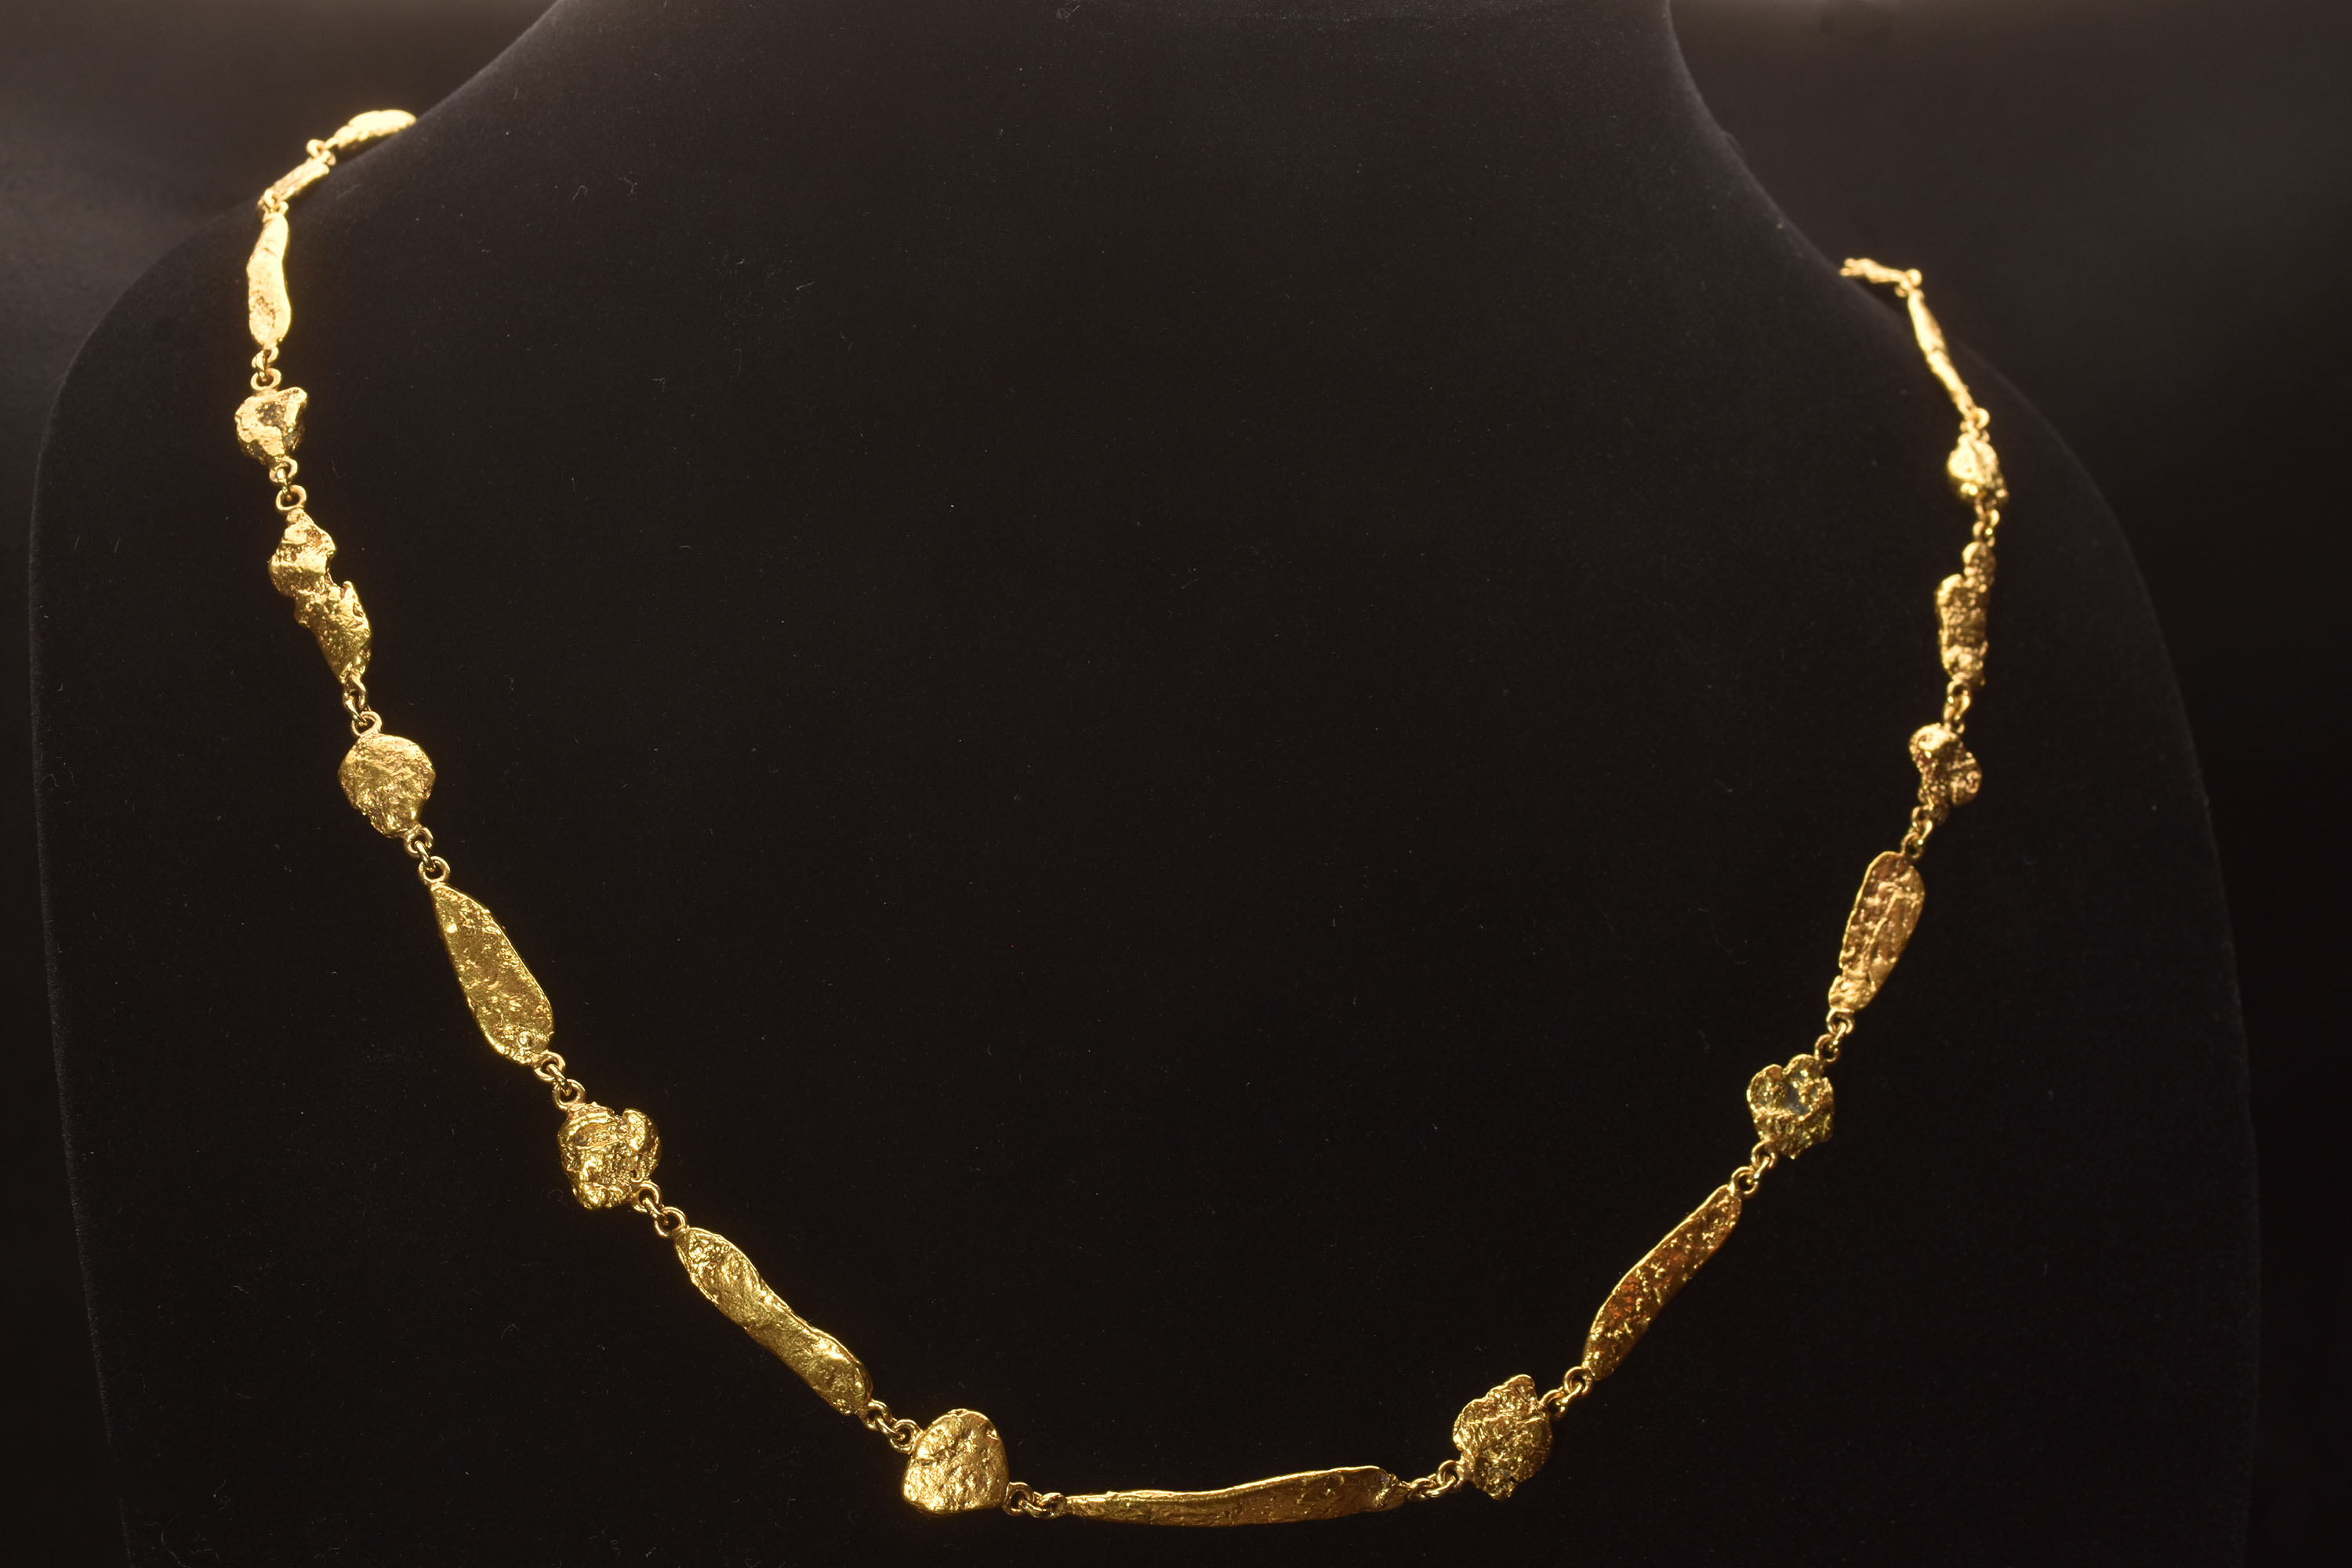 Spectacular One-Of-A-Kind Natural Alaska Gold Nugget Necklace